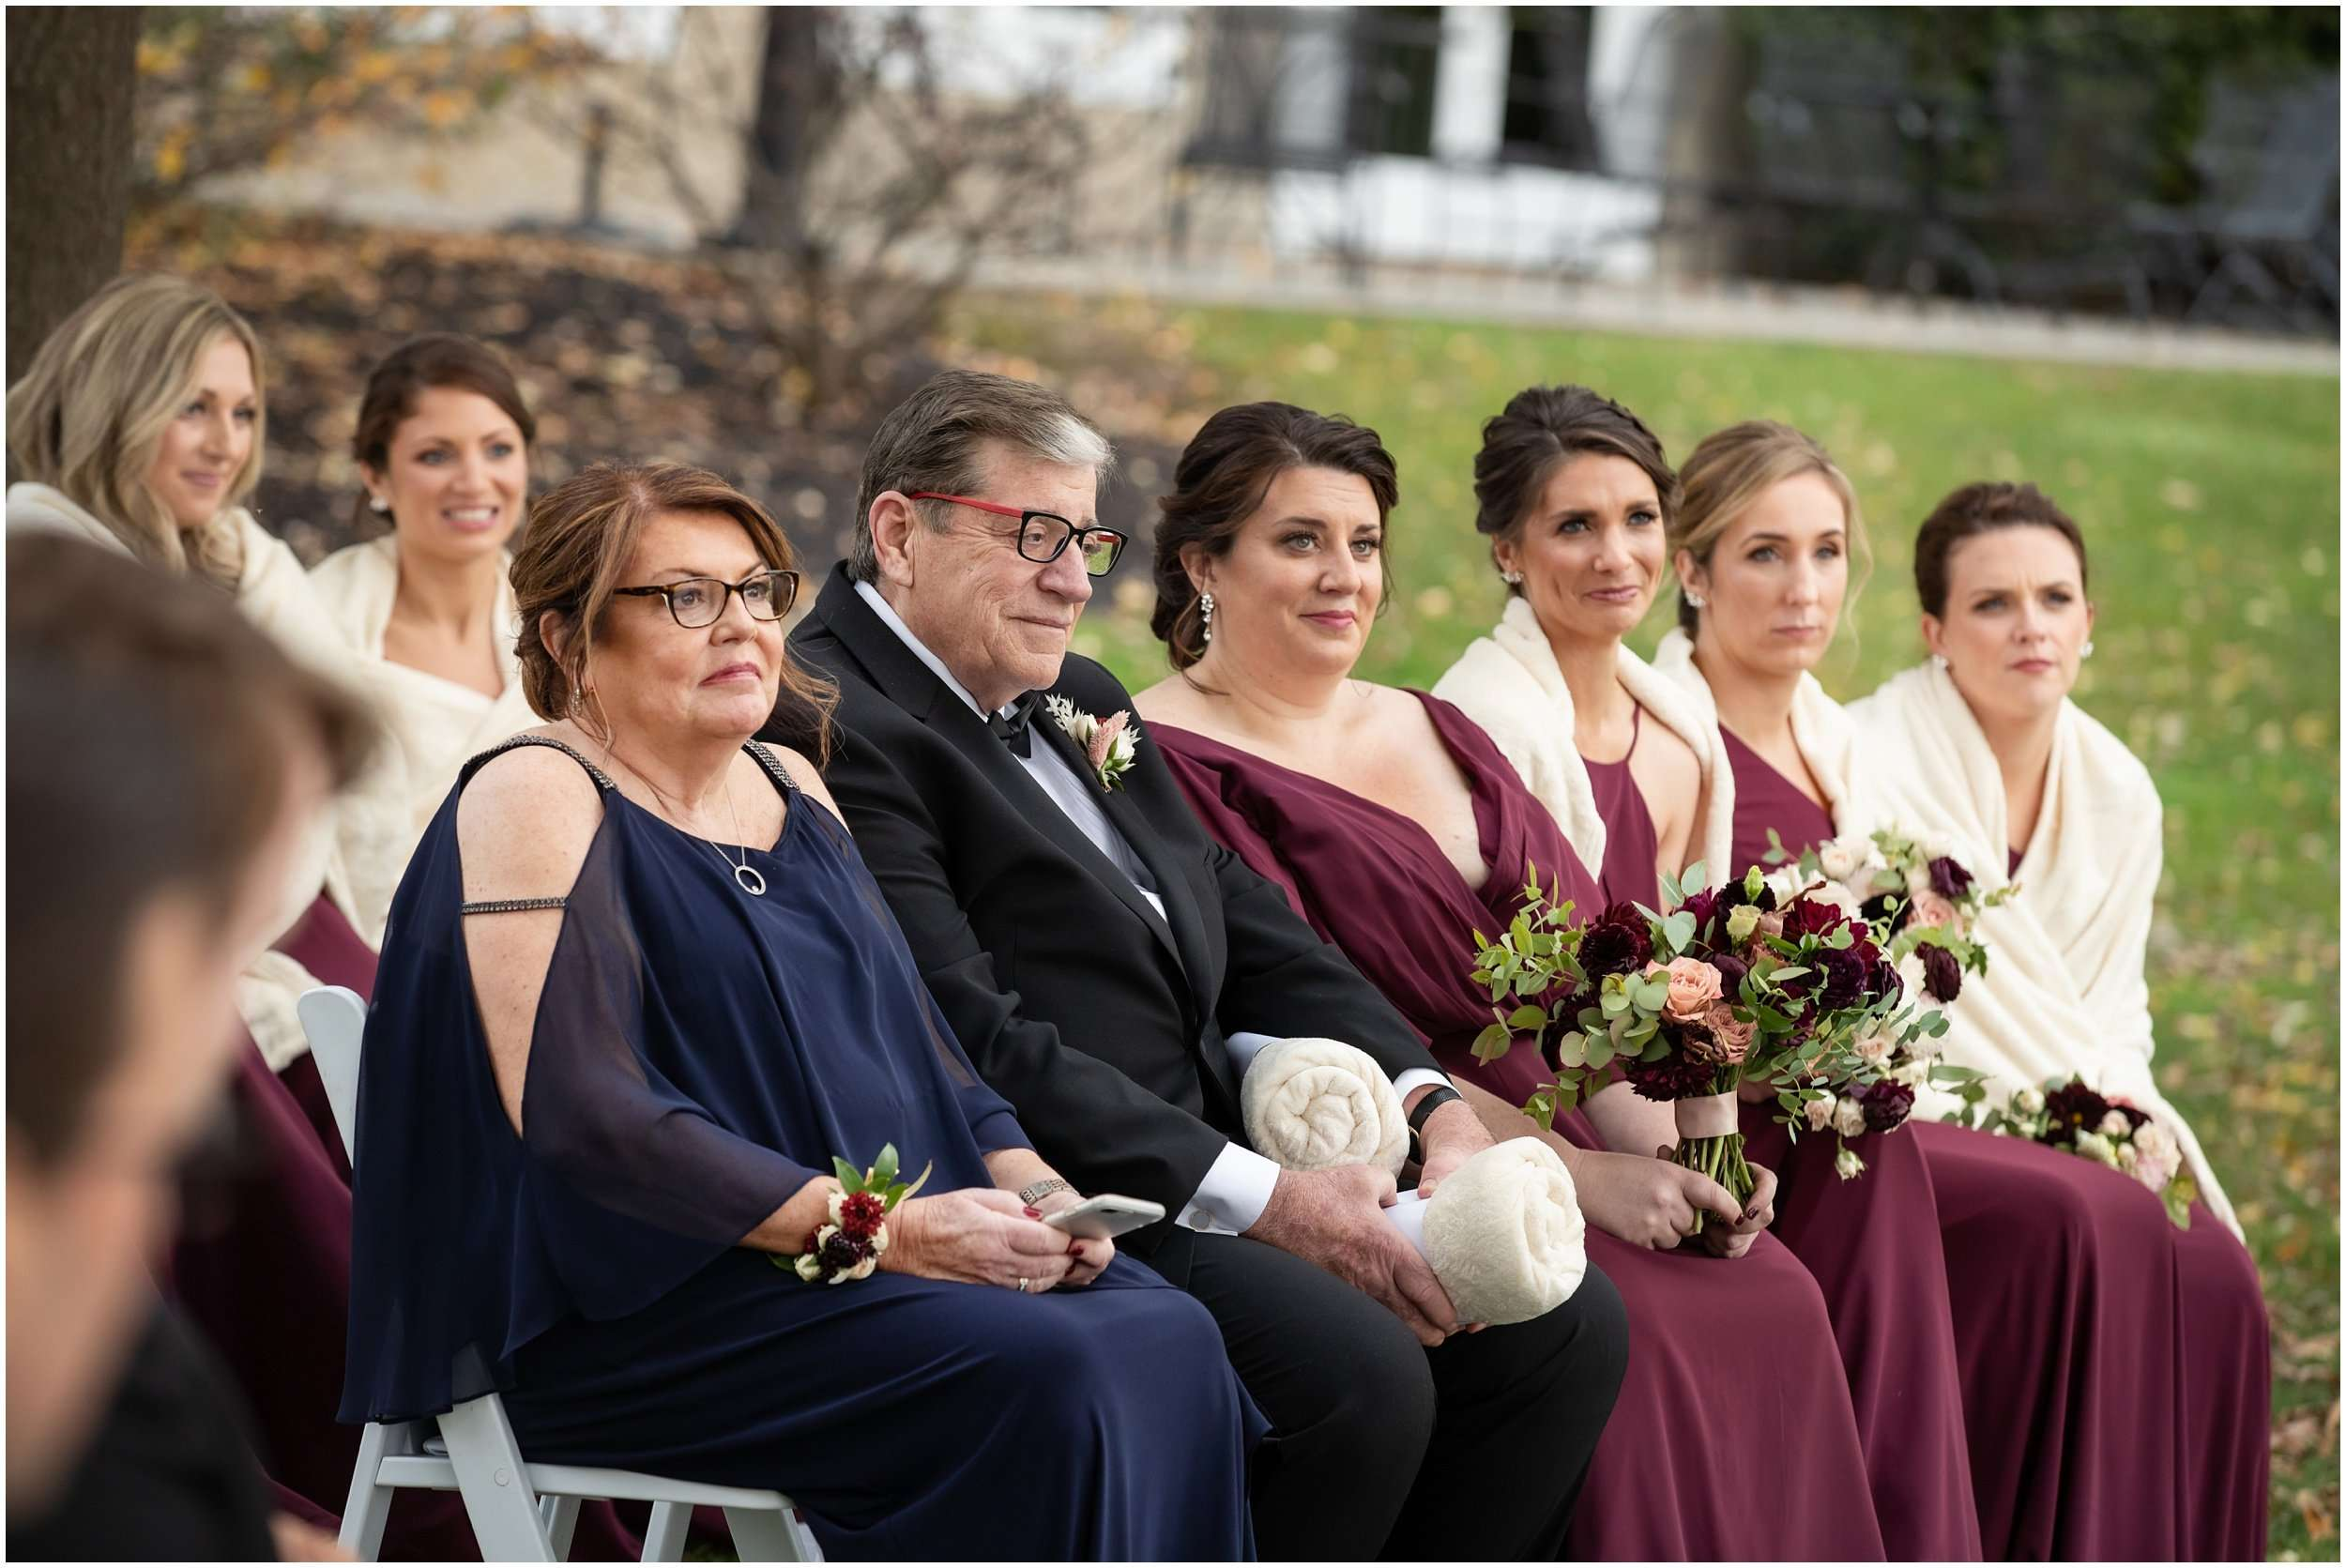 Fall Wedding at the Jefferson Golf and Country Club | Ohio Wedding Photography 154